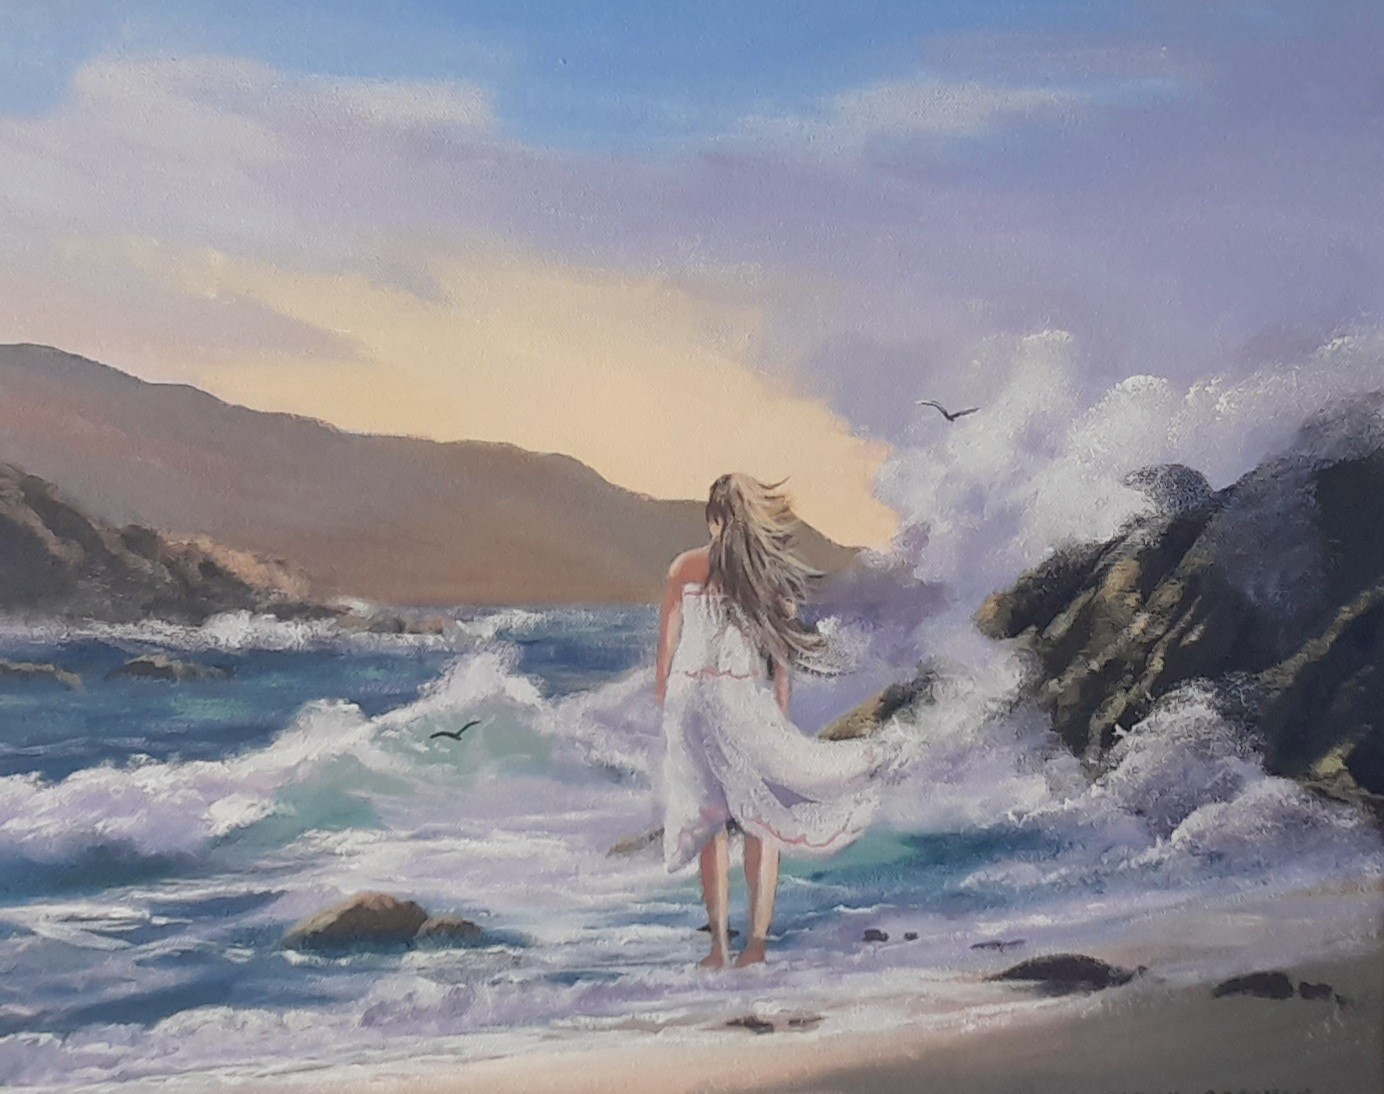 Cathal O Malley - Keel waves